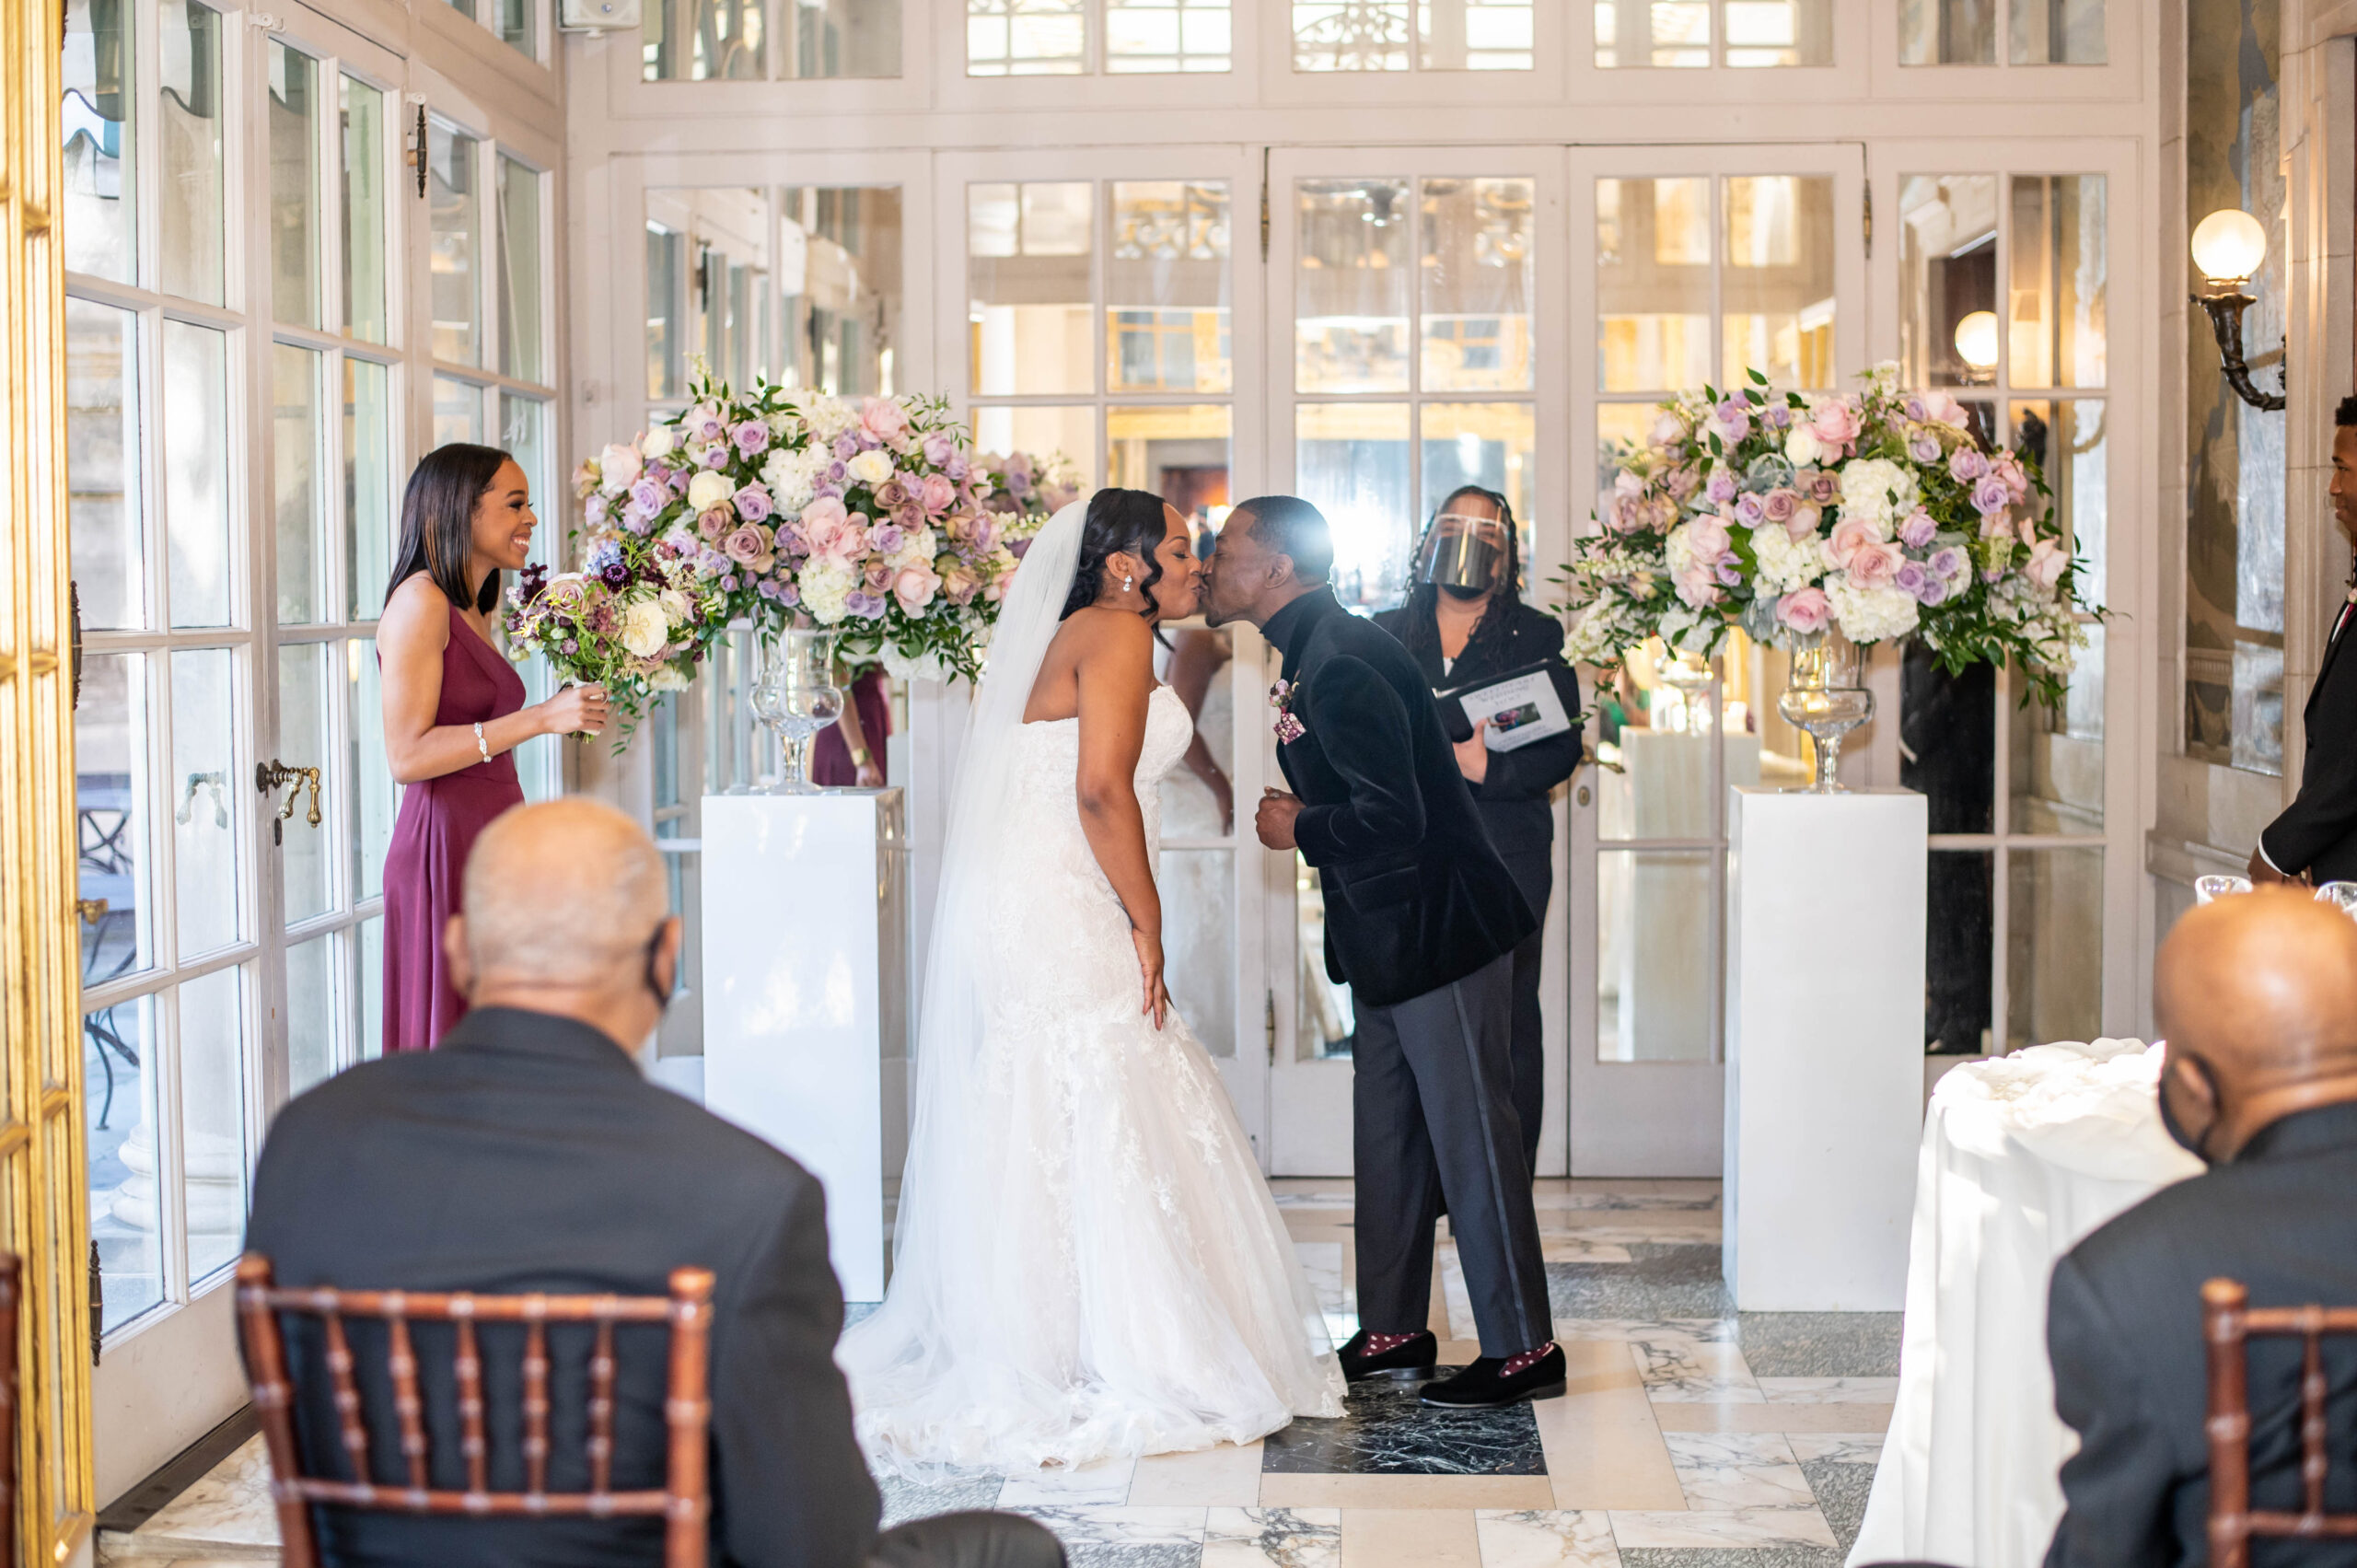 regina-redell-dc-micro-wedding-andrew-roby-events